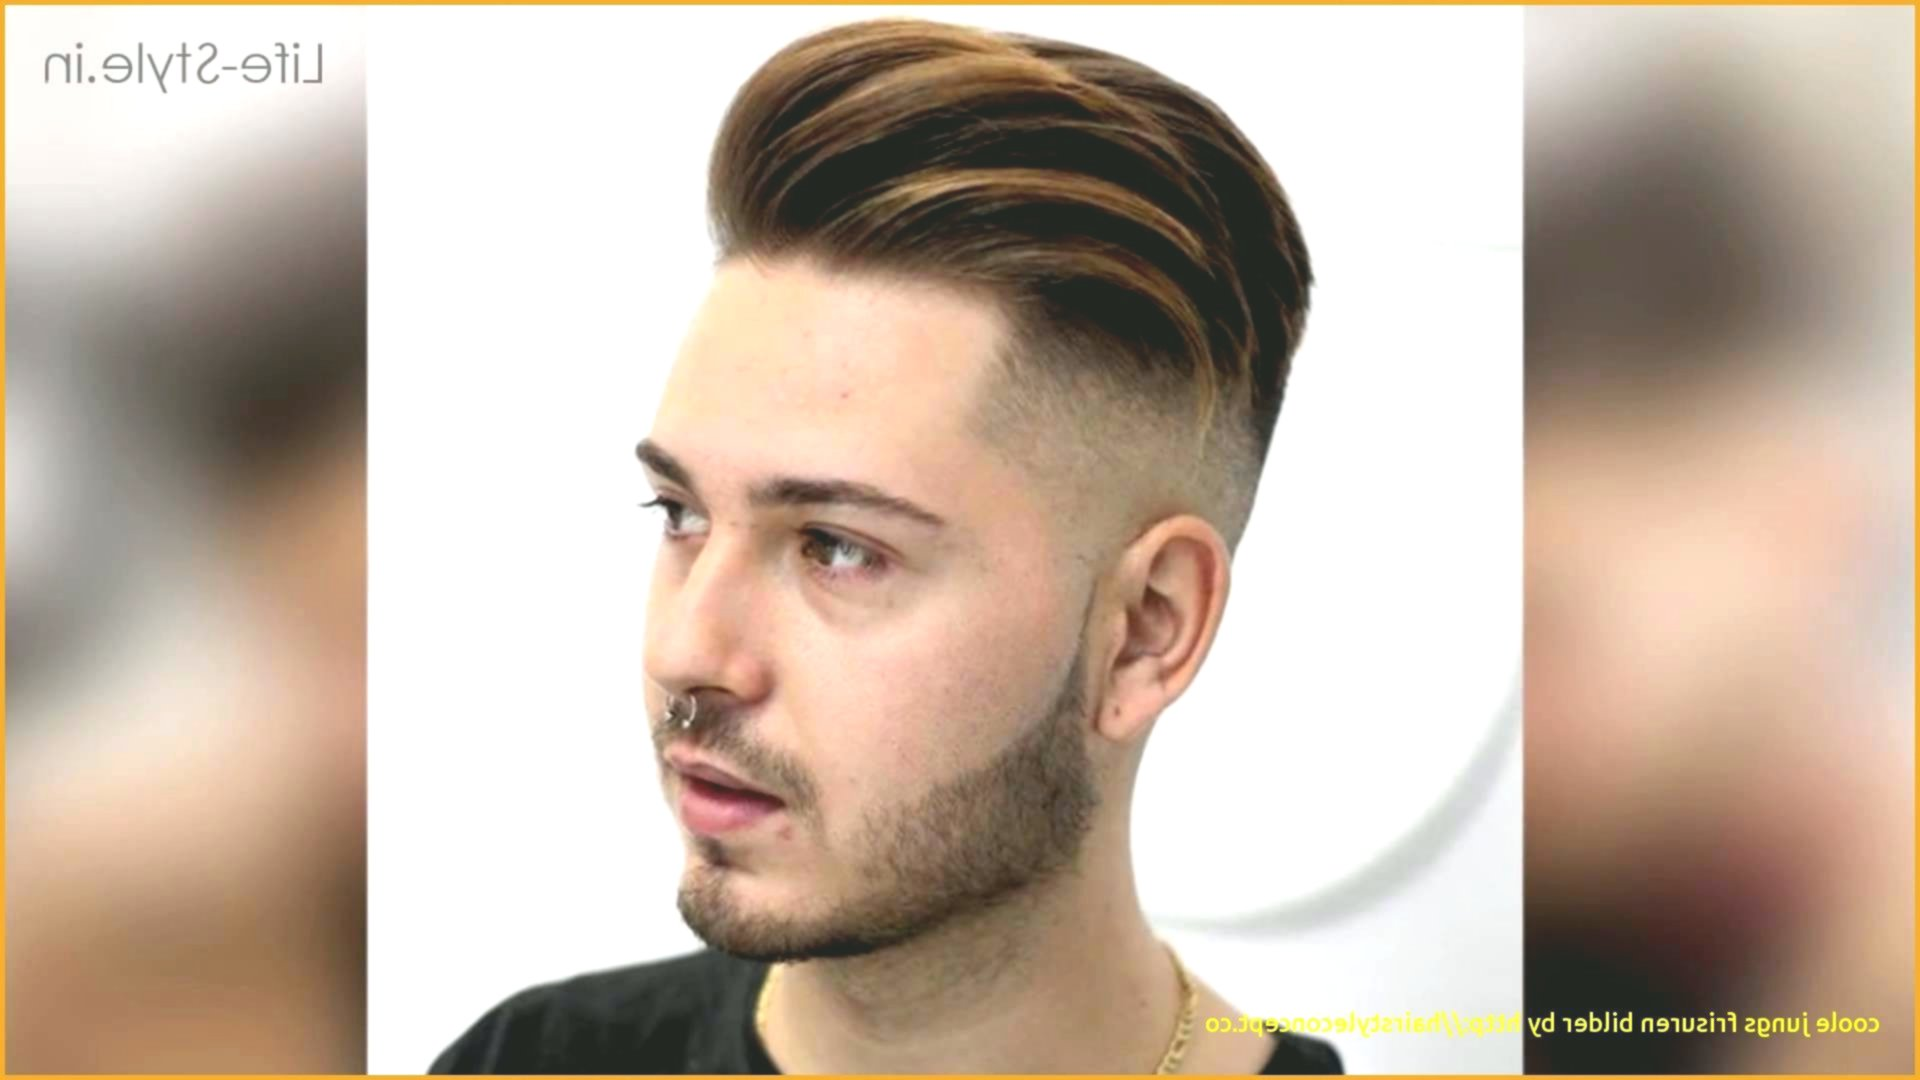 Inspirational Men's Haircut 2018 Build Layout-Awesome Men's Haircut 2018 Collection